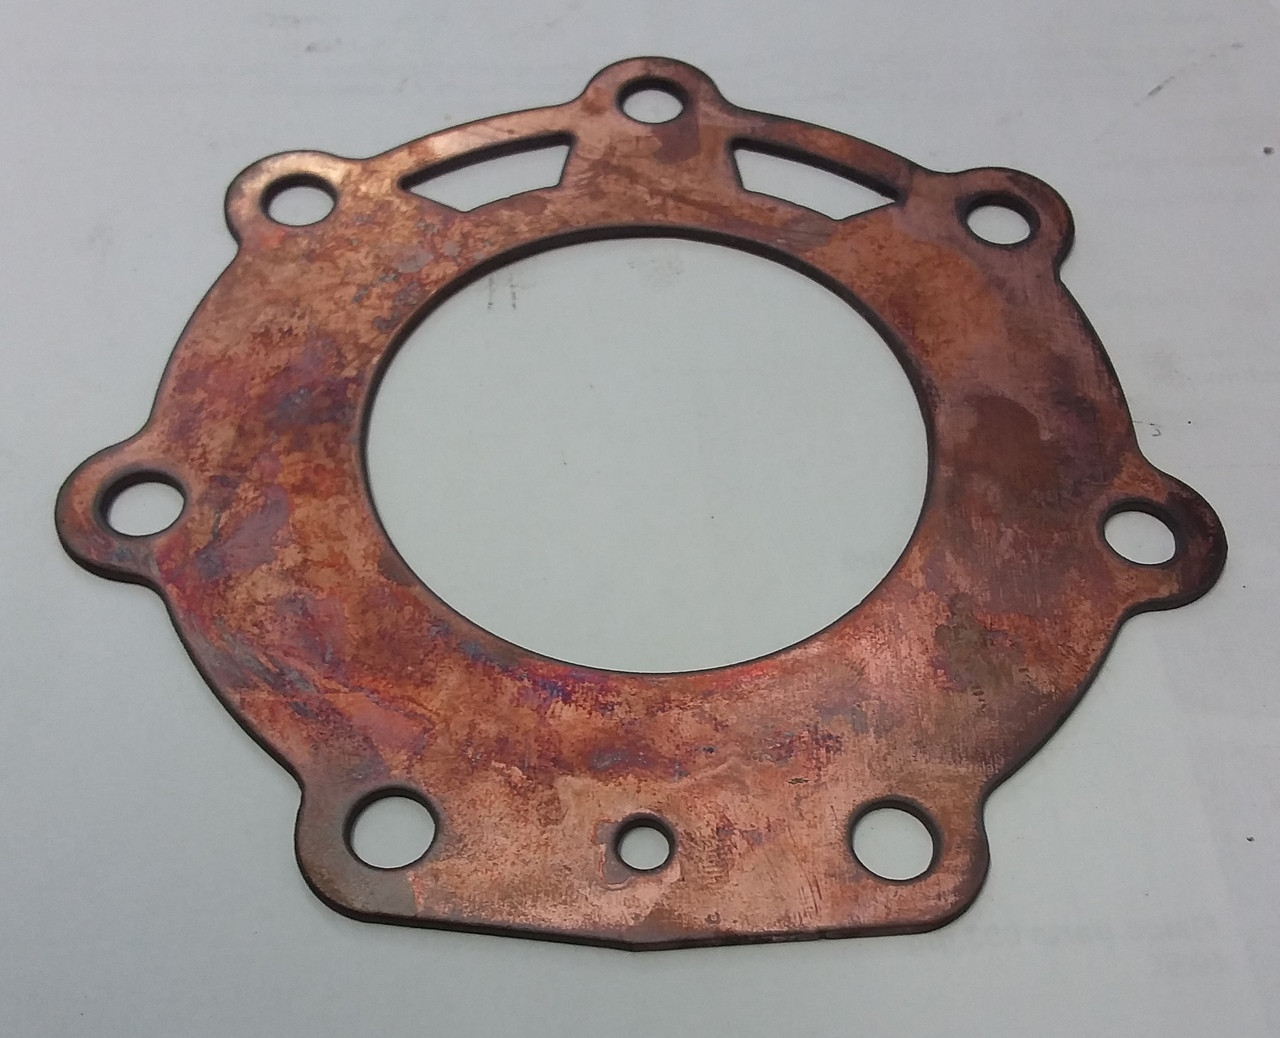 Head Gasket Maico  84-86 250 water cooled (Annealed Copper) Re-useable